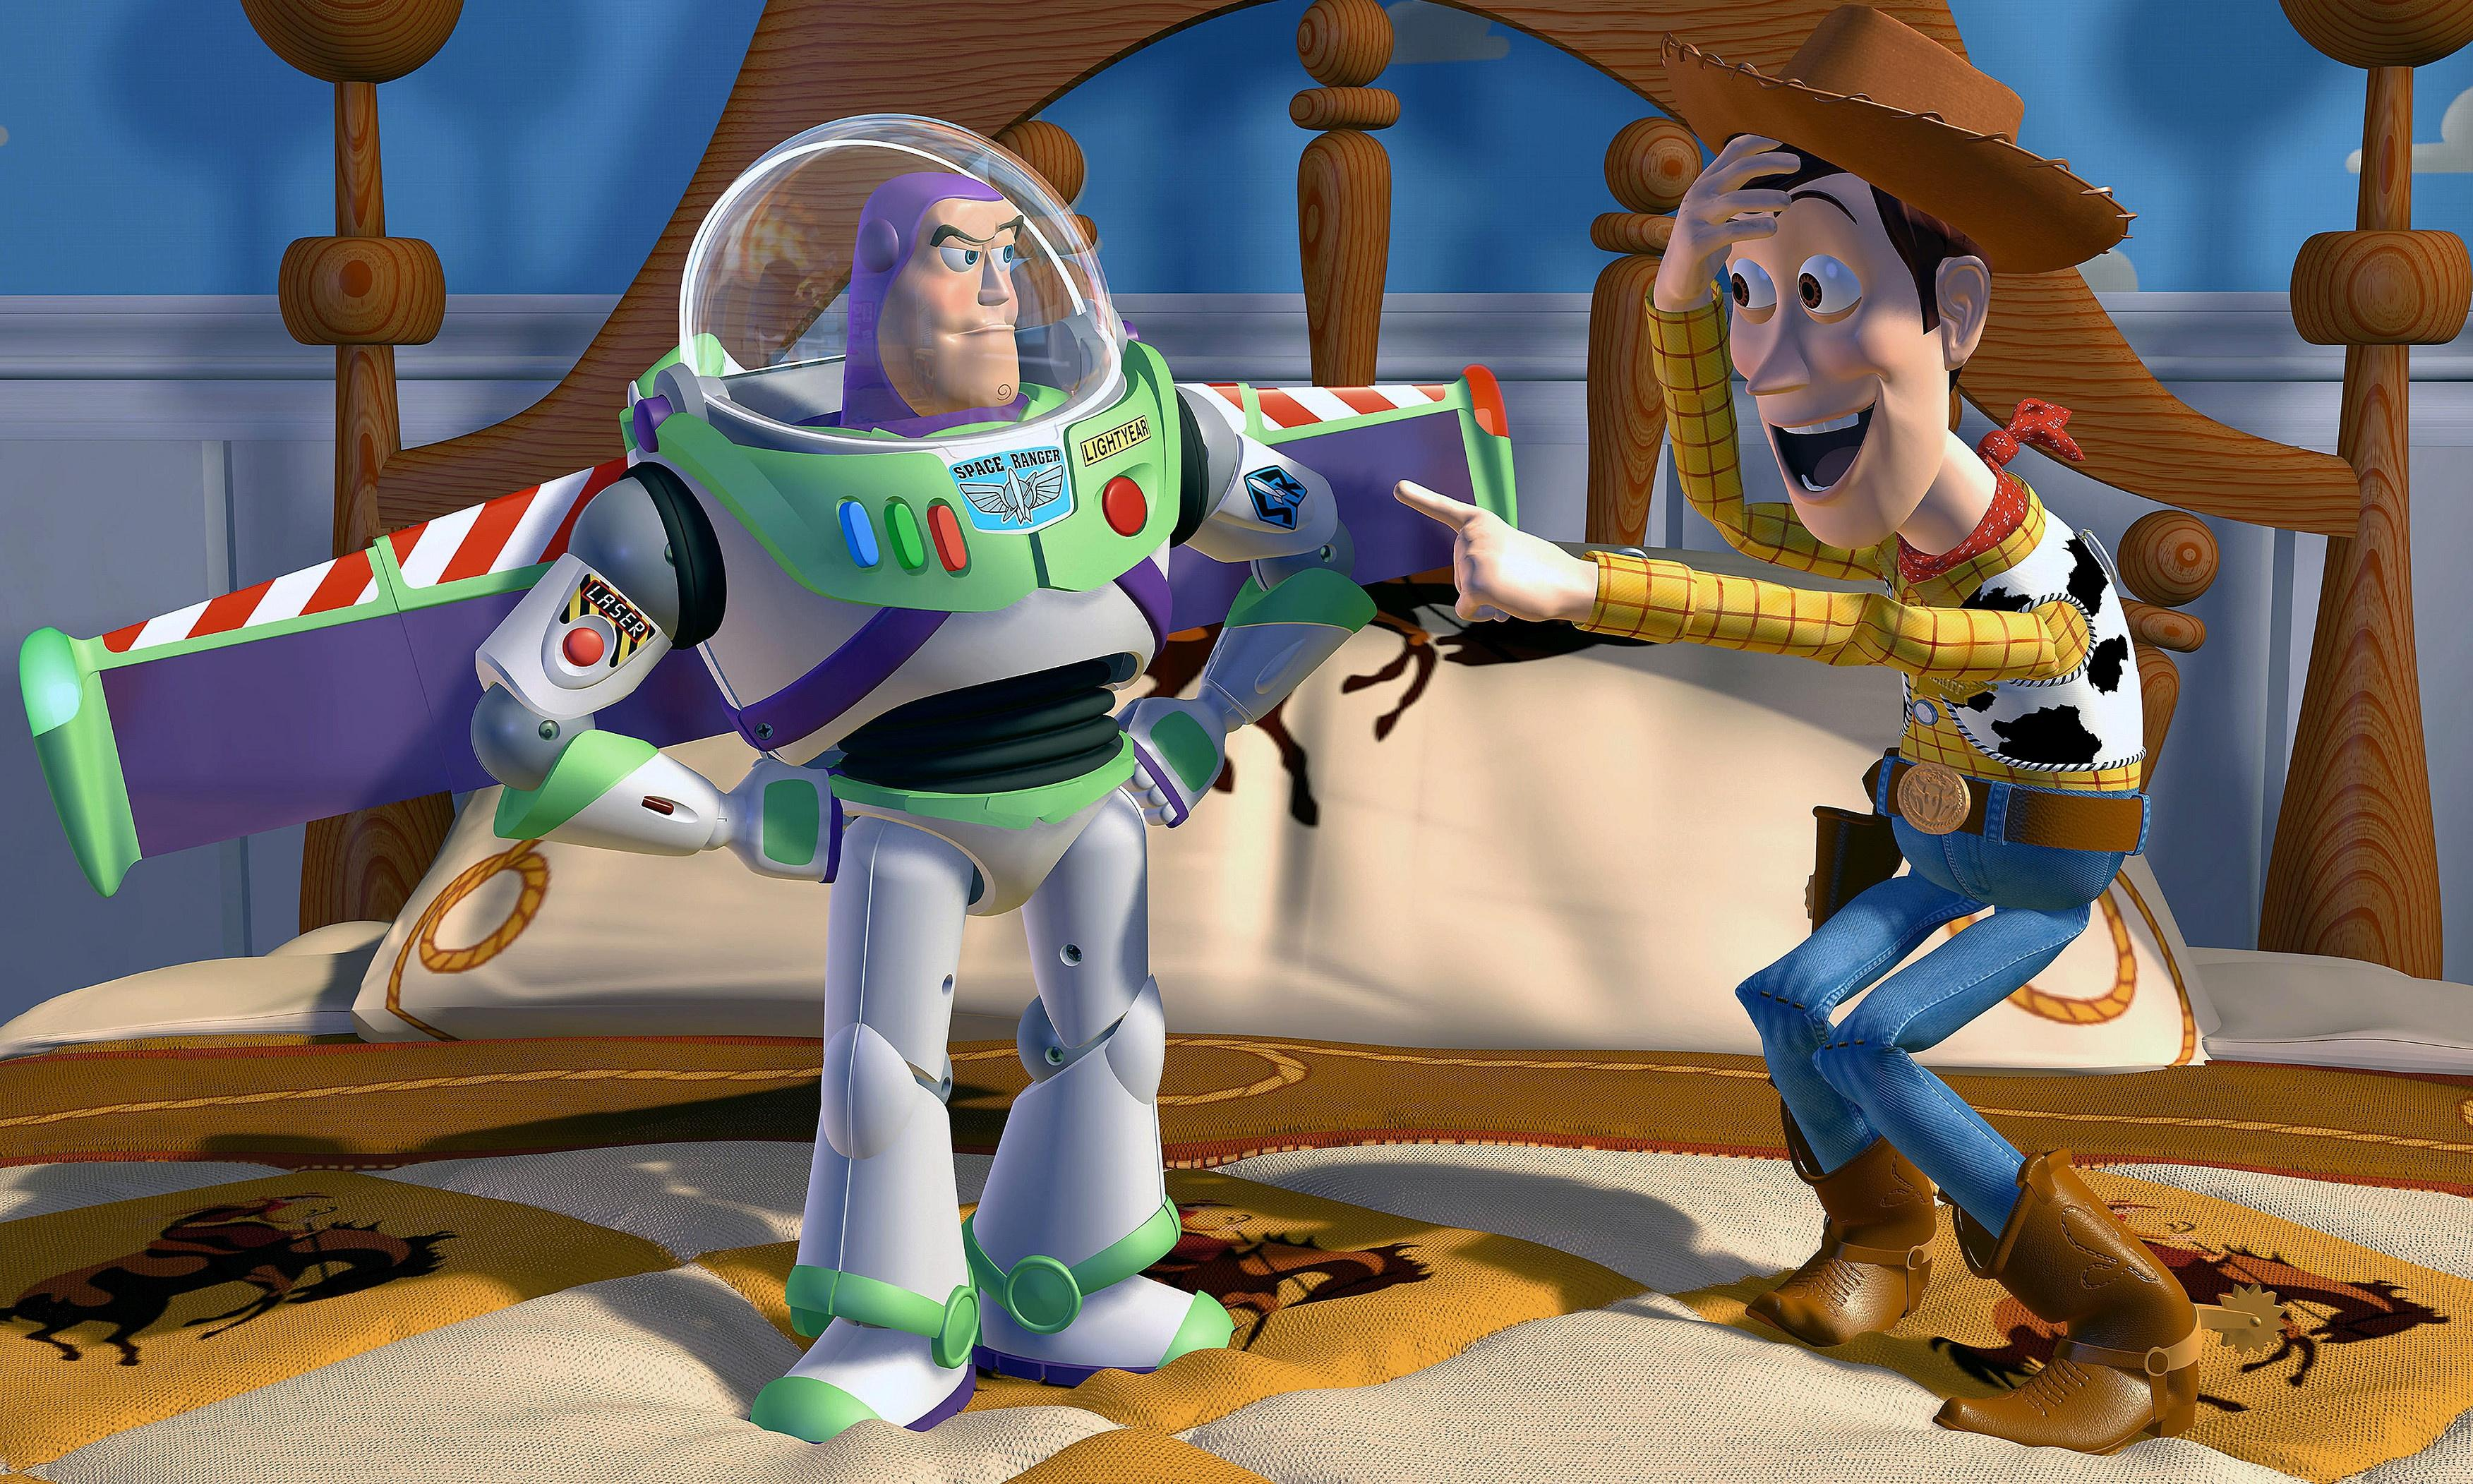 Lucidity and beyond: how Toy Story's visual effects transformed cinema